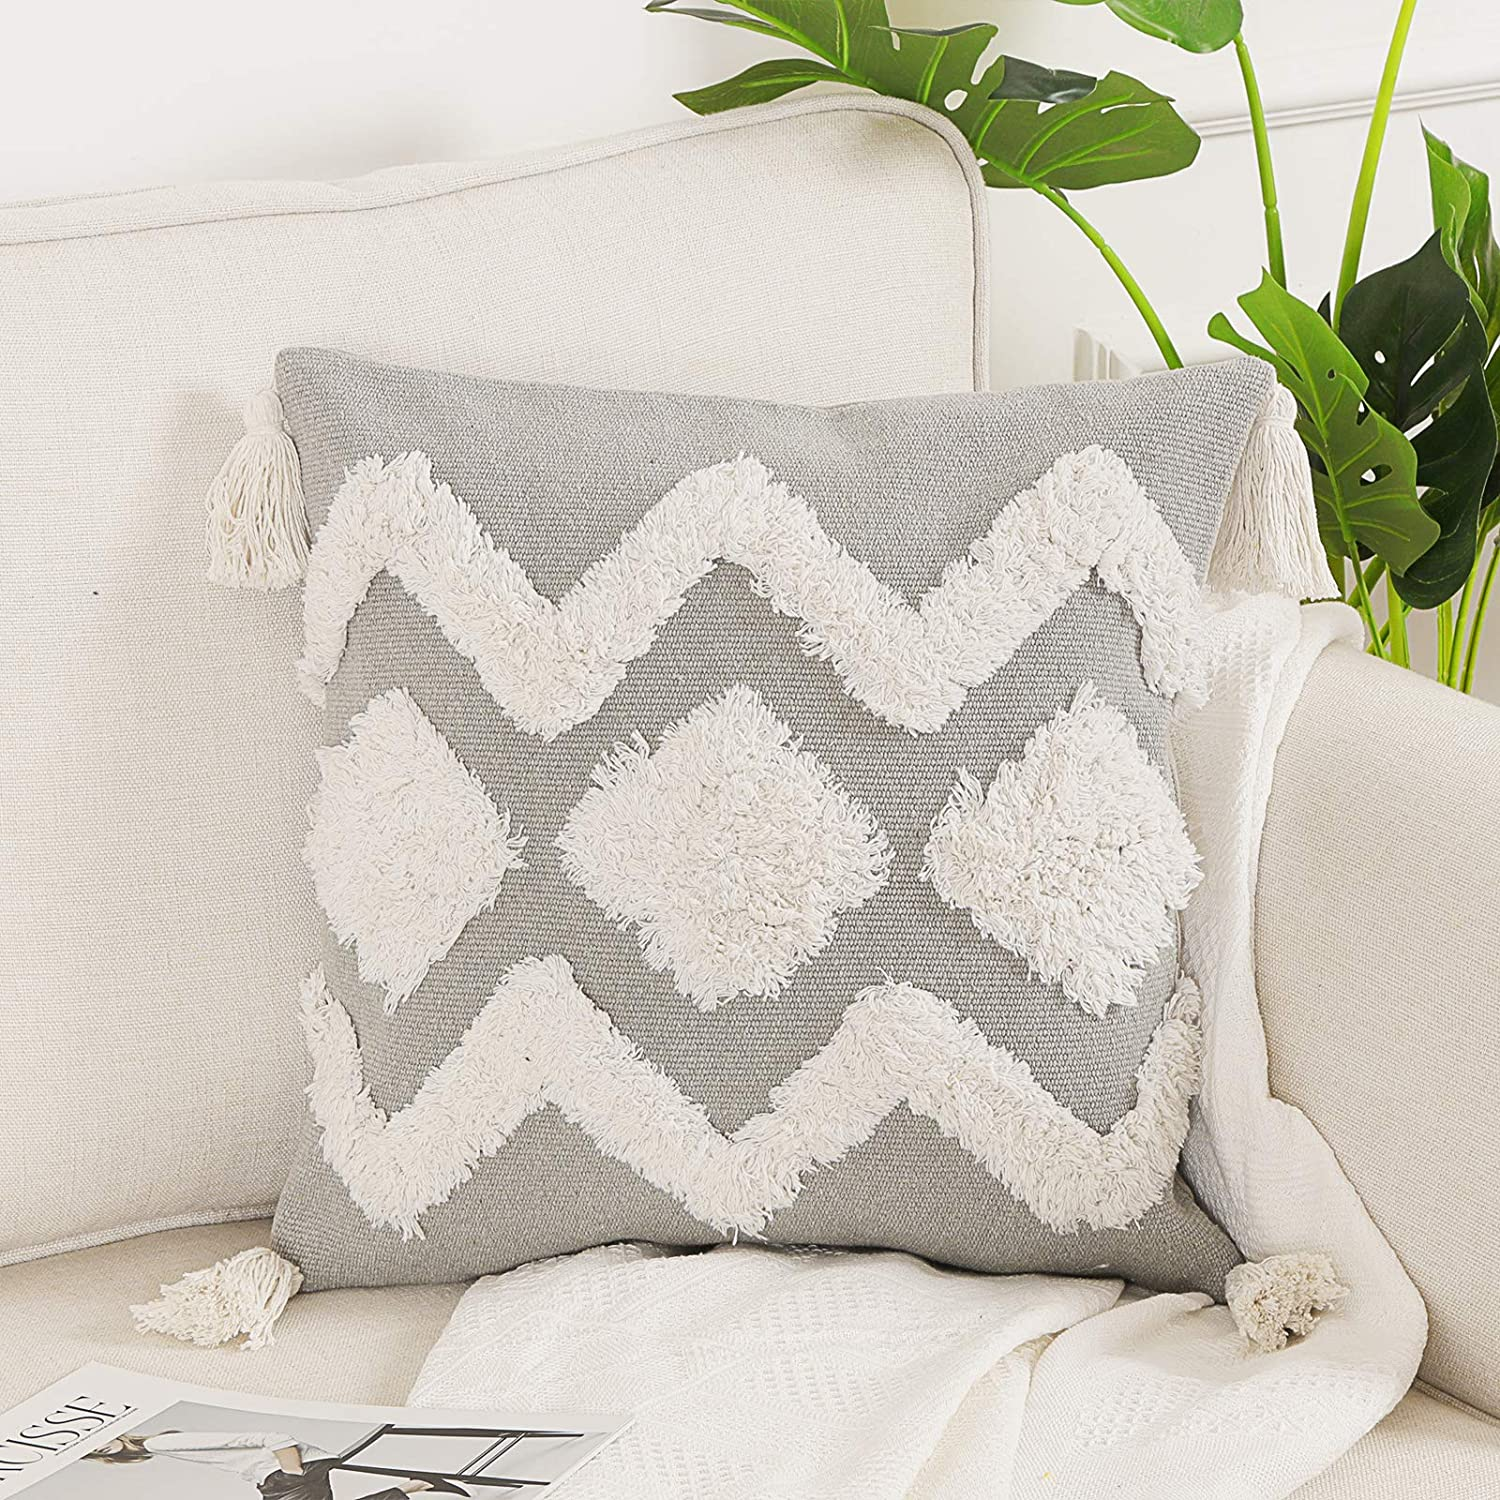 Ojia Geometric Decorative Throw Pillow Cover Farmhouse Boho Pillow Case Tufted With Tassels Square Accent Cushion Cover Neutral Pillow Sham For Couch Sofa Living Room Square 18 Inches Grey Home